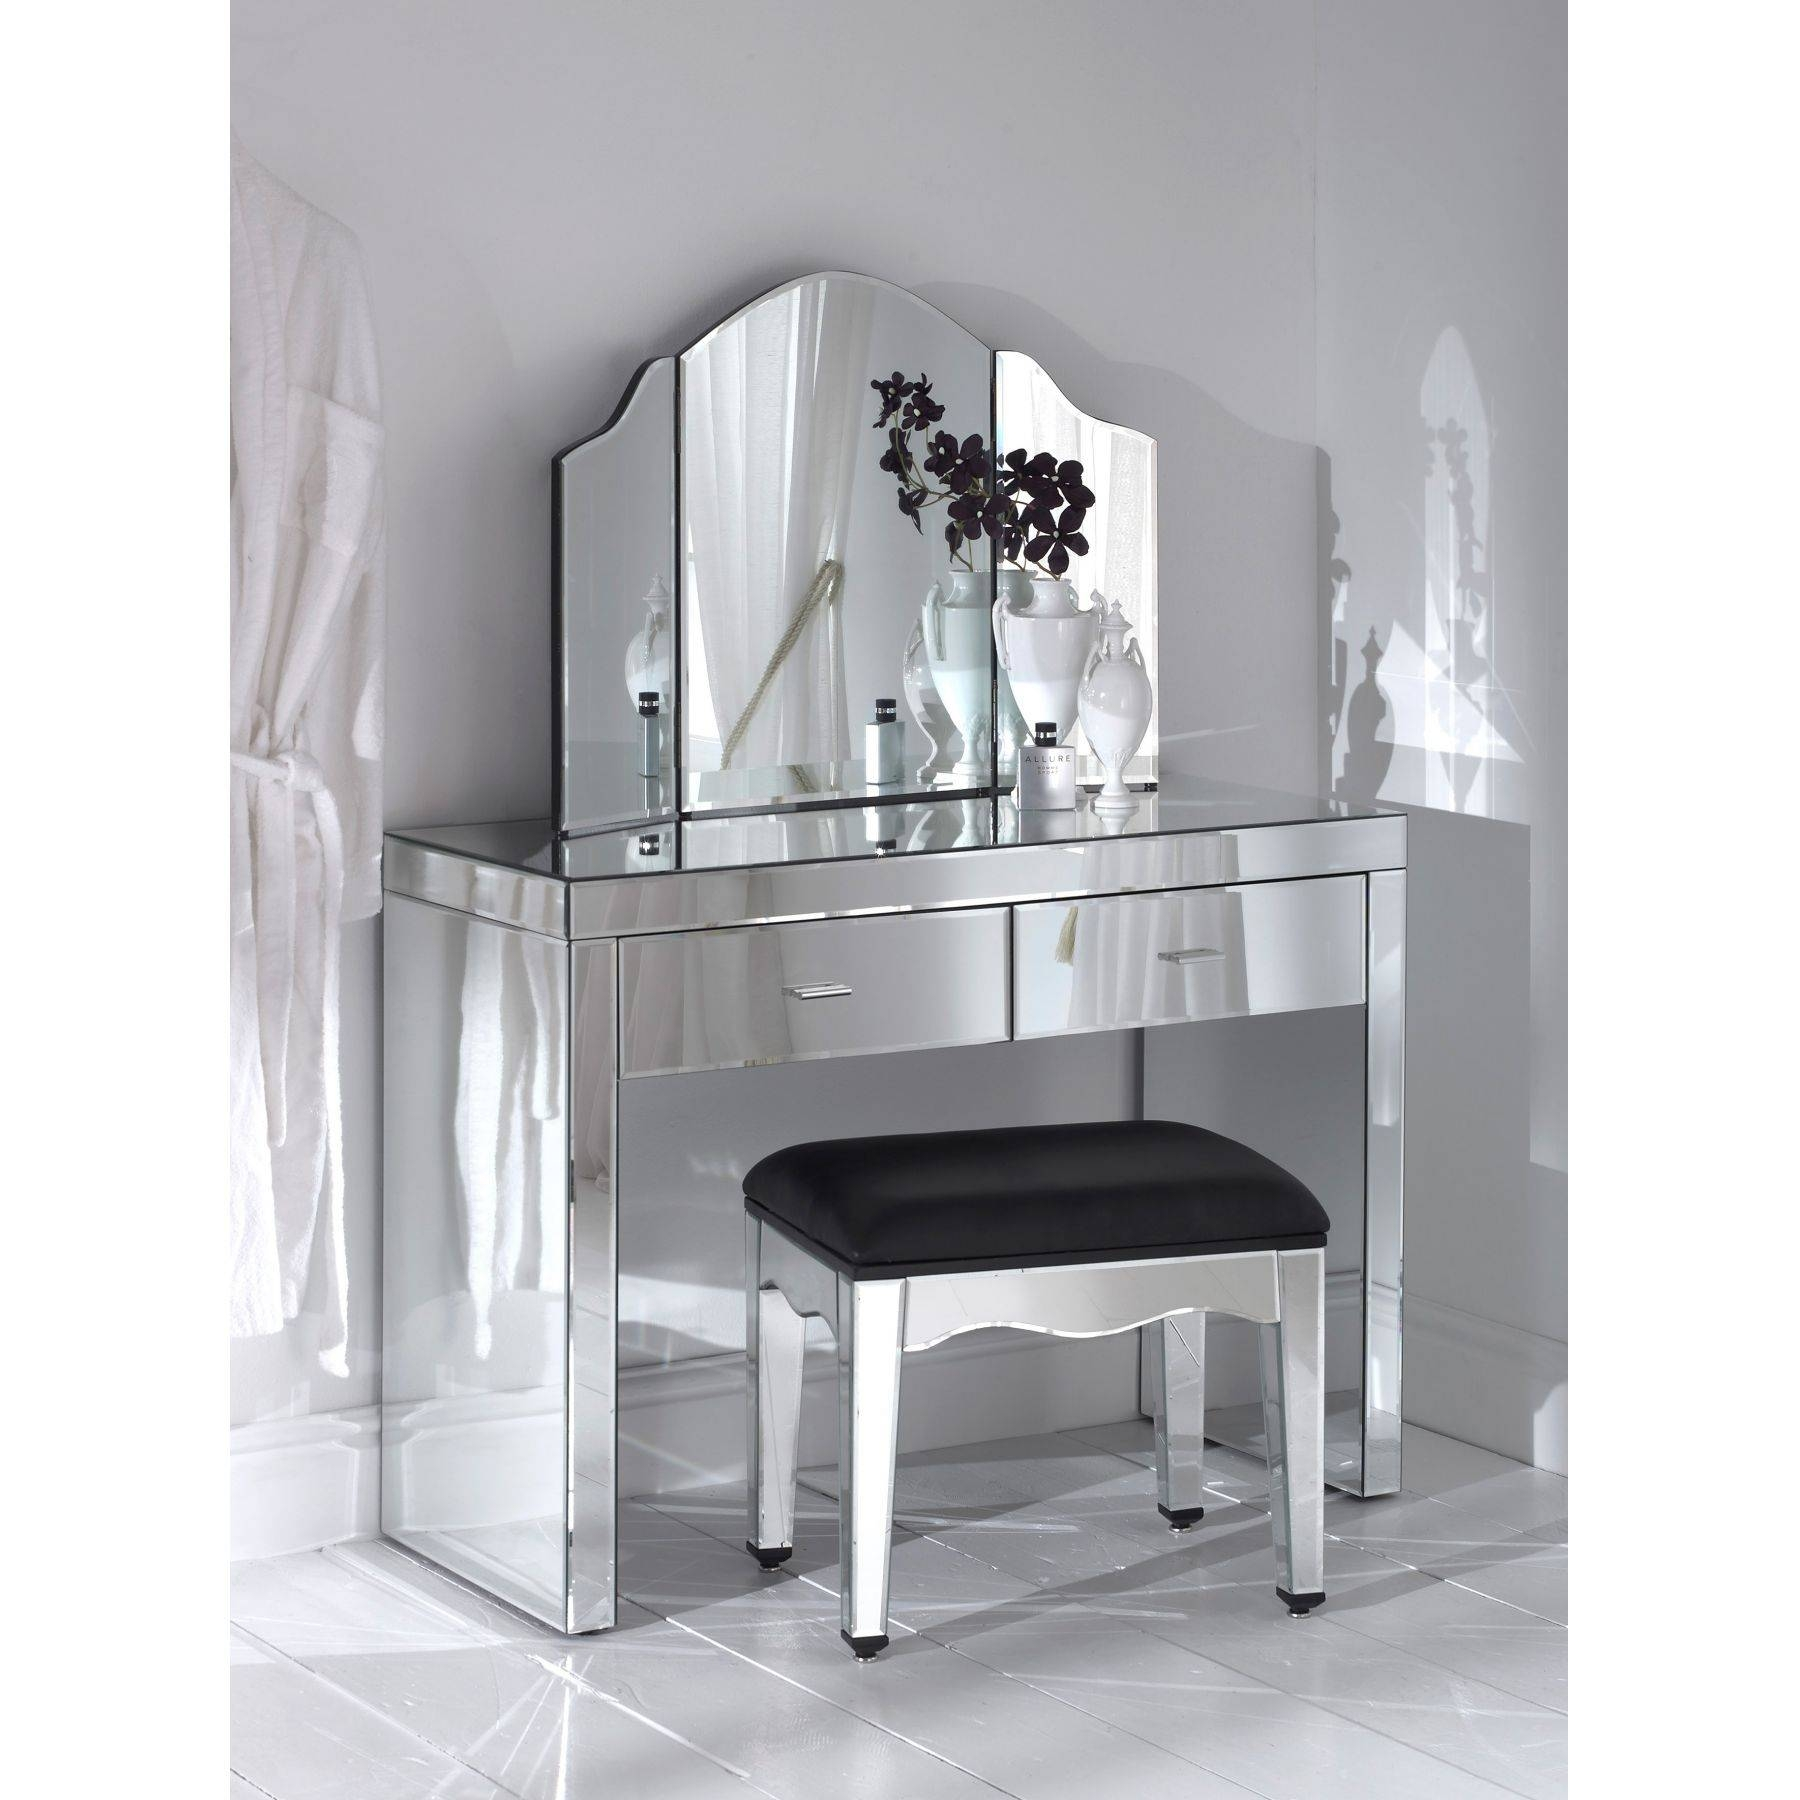 Black Dressing Table With Mirror And Lights | Creative Vanity throughout Dressing Table Mirrors (Image 4 of 25)